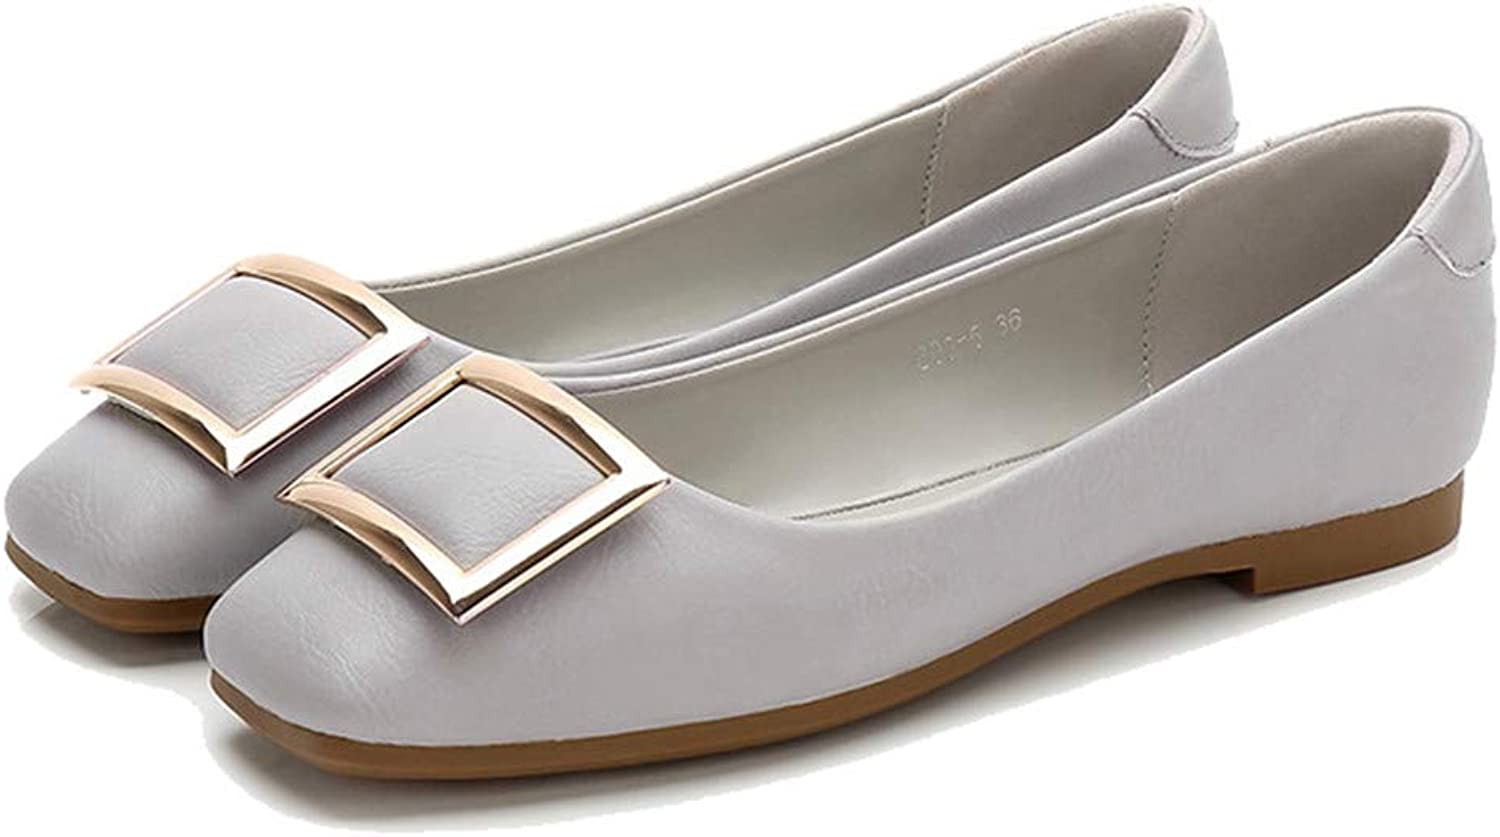 Kyle Walsh Pa Women's Flats Square Toe Metal Buckle Female Casual Soft Moccasins shoes